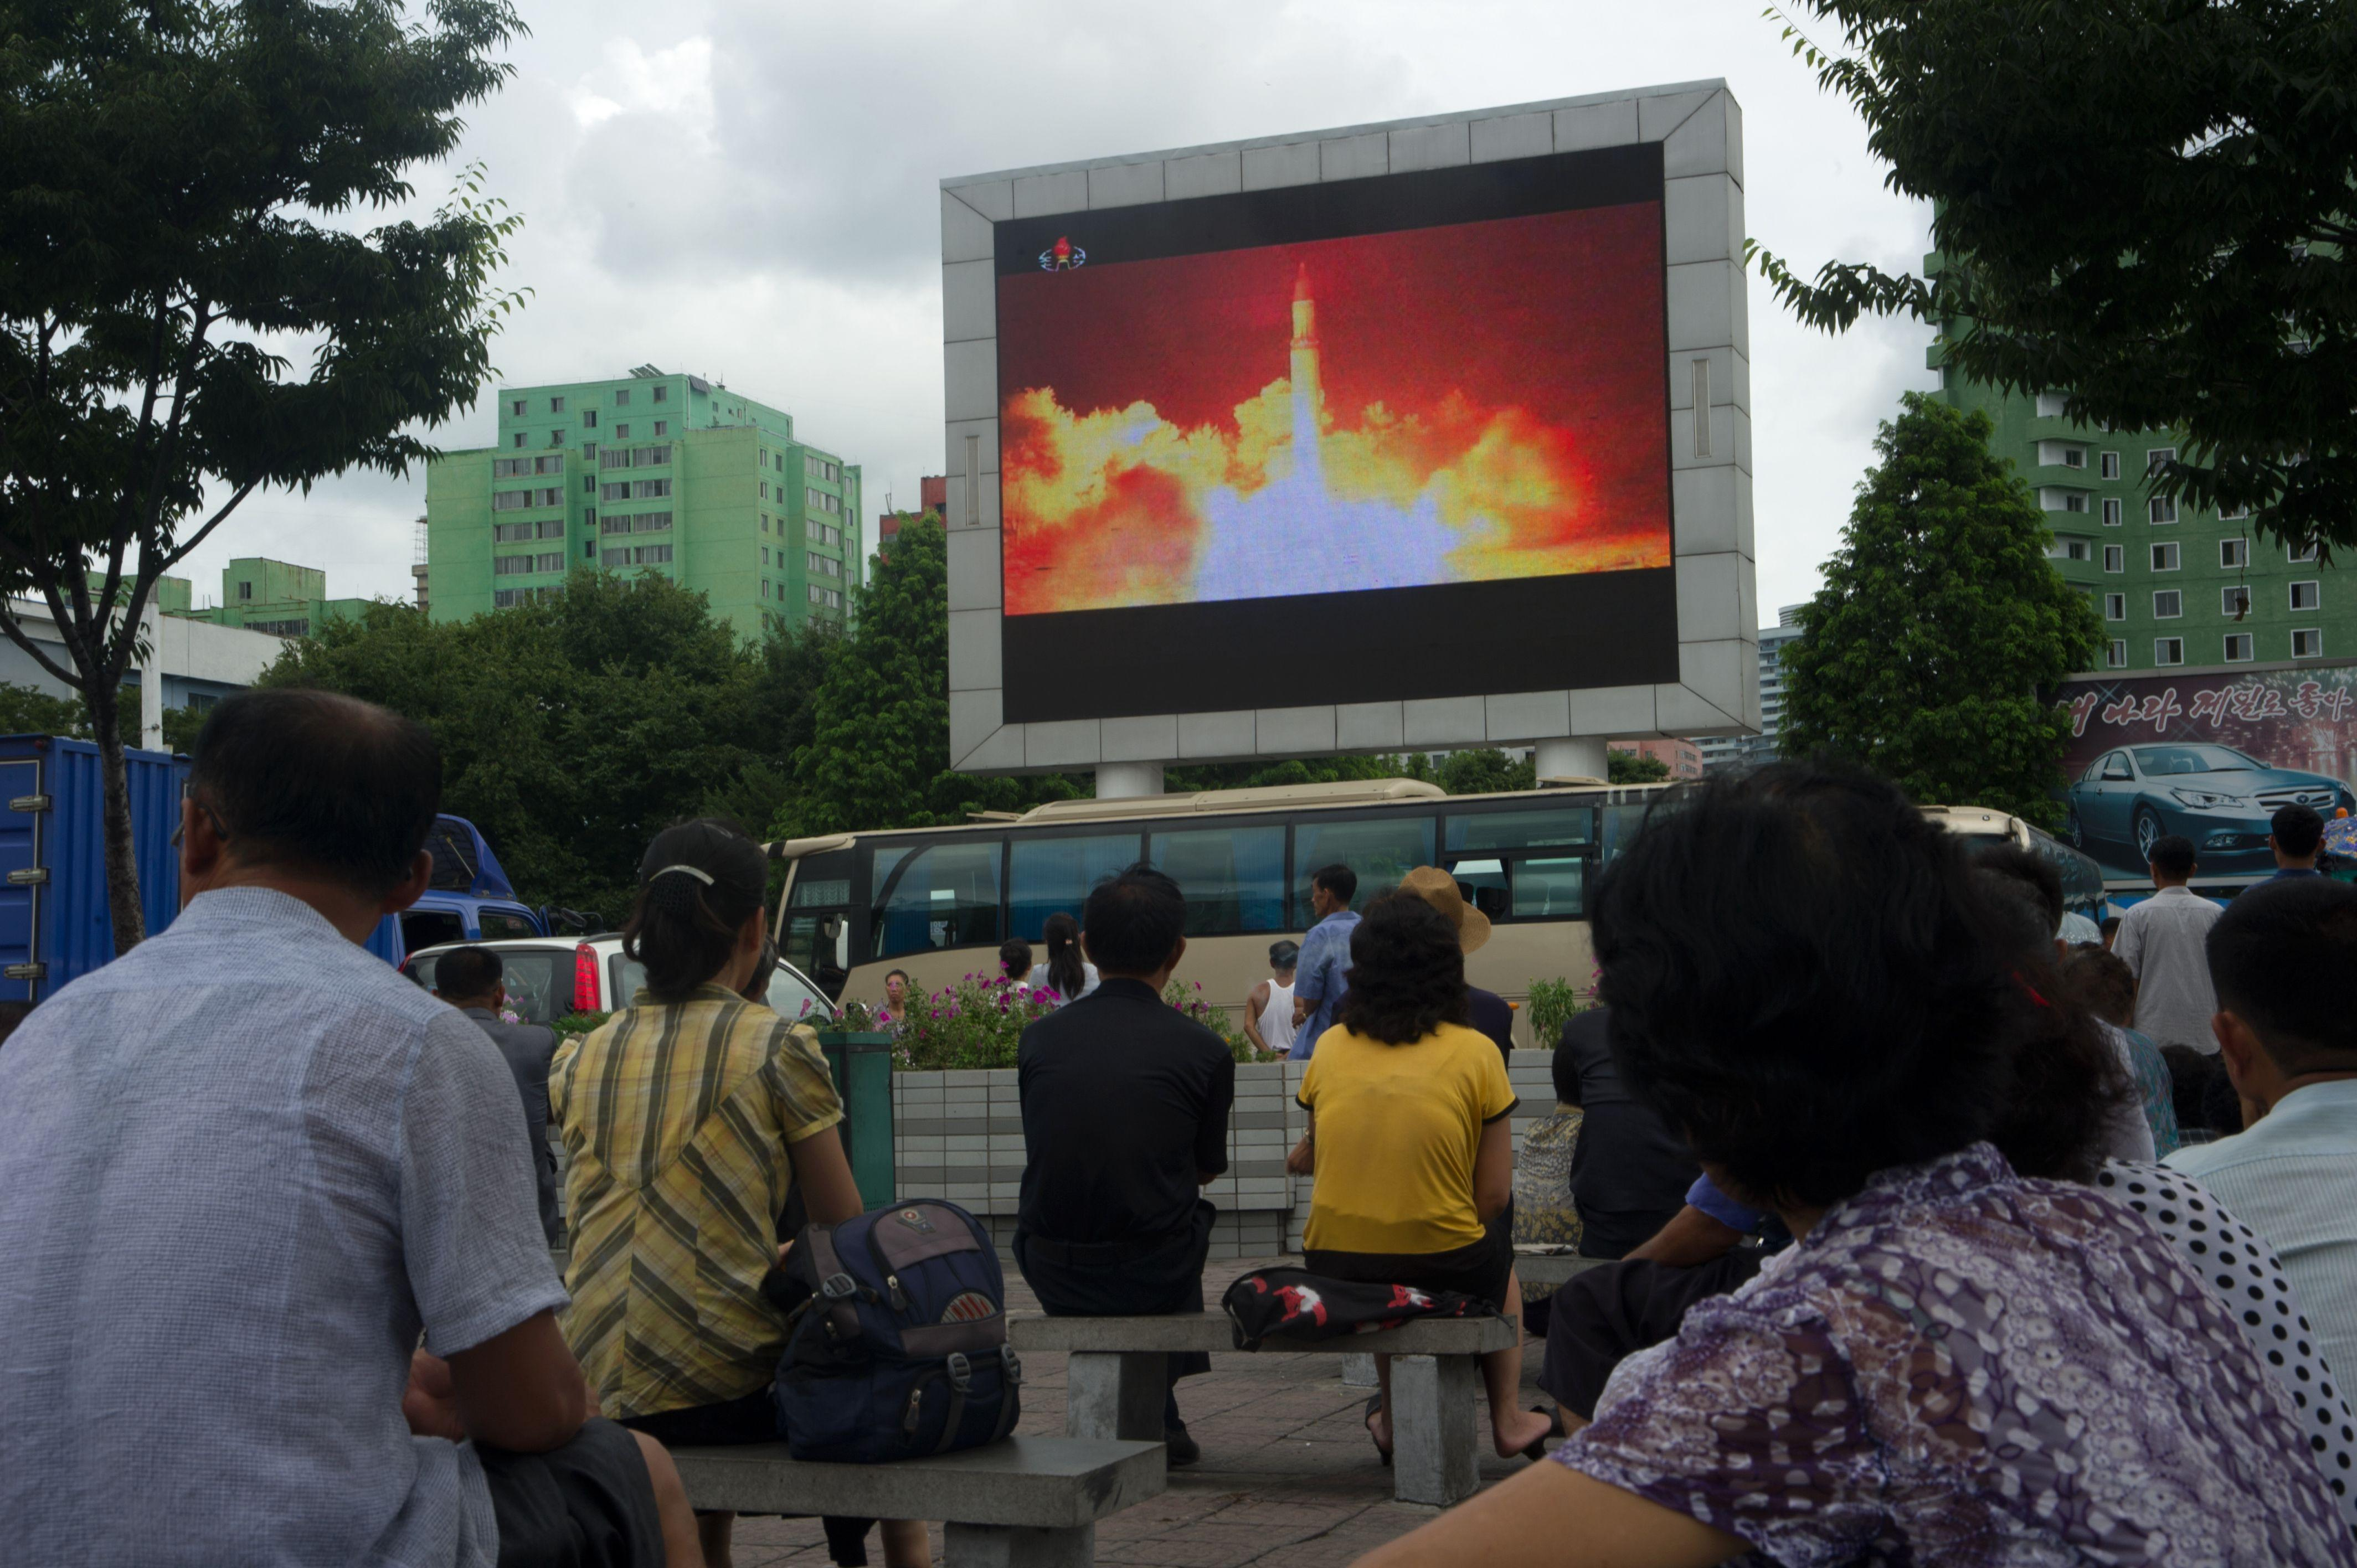 Missile launch shown on a large TV screen in a public square in Pyongyang, North Korea.